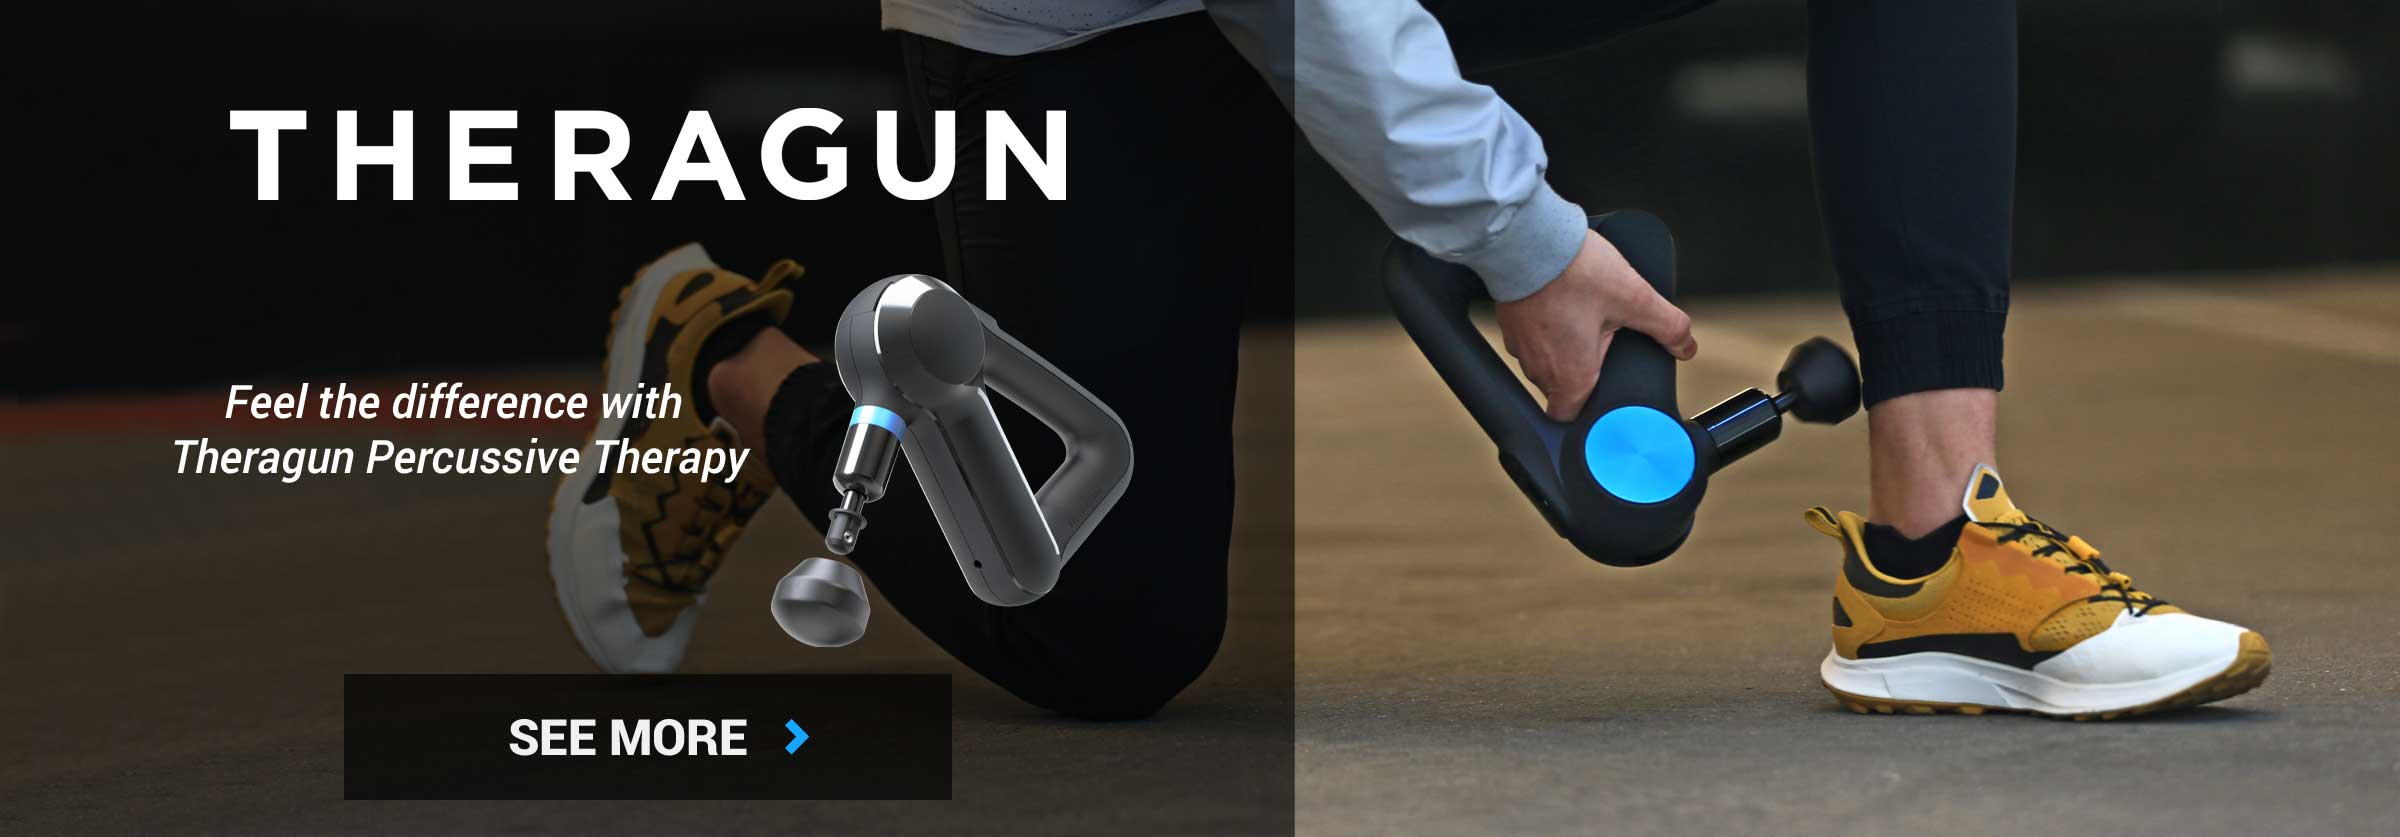 Theragun - Massage reinvented - Shop Now